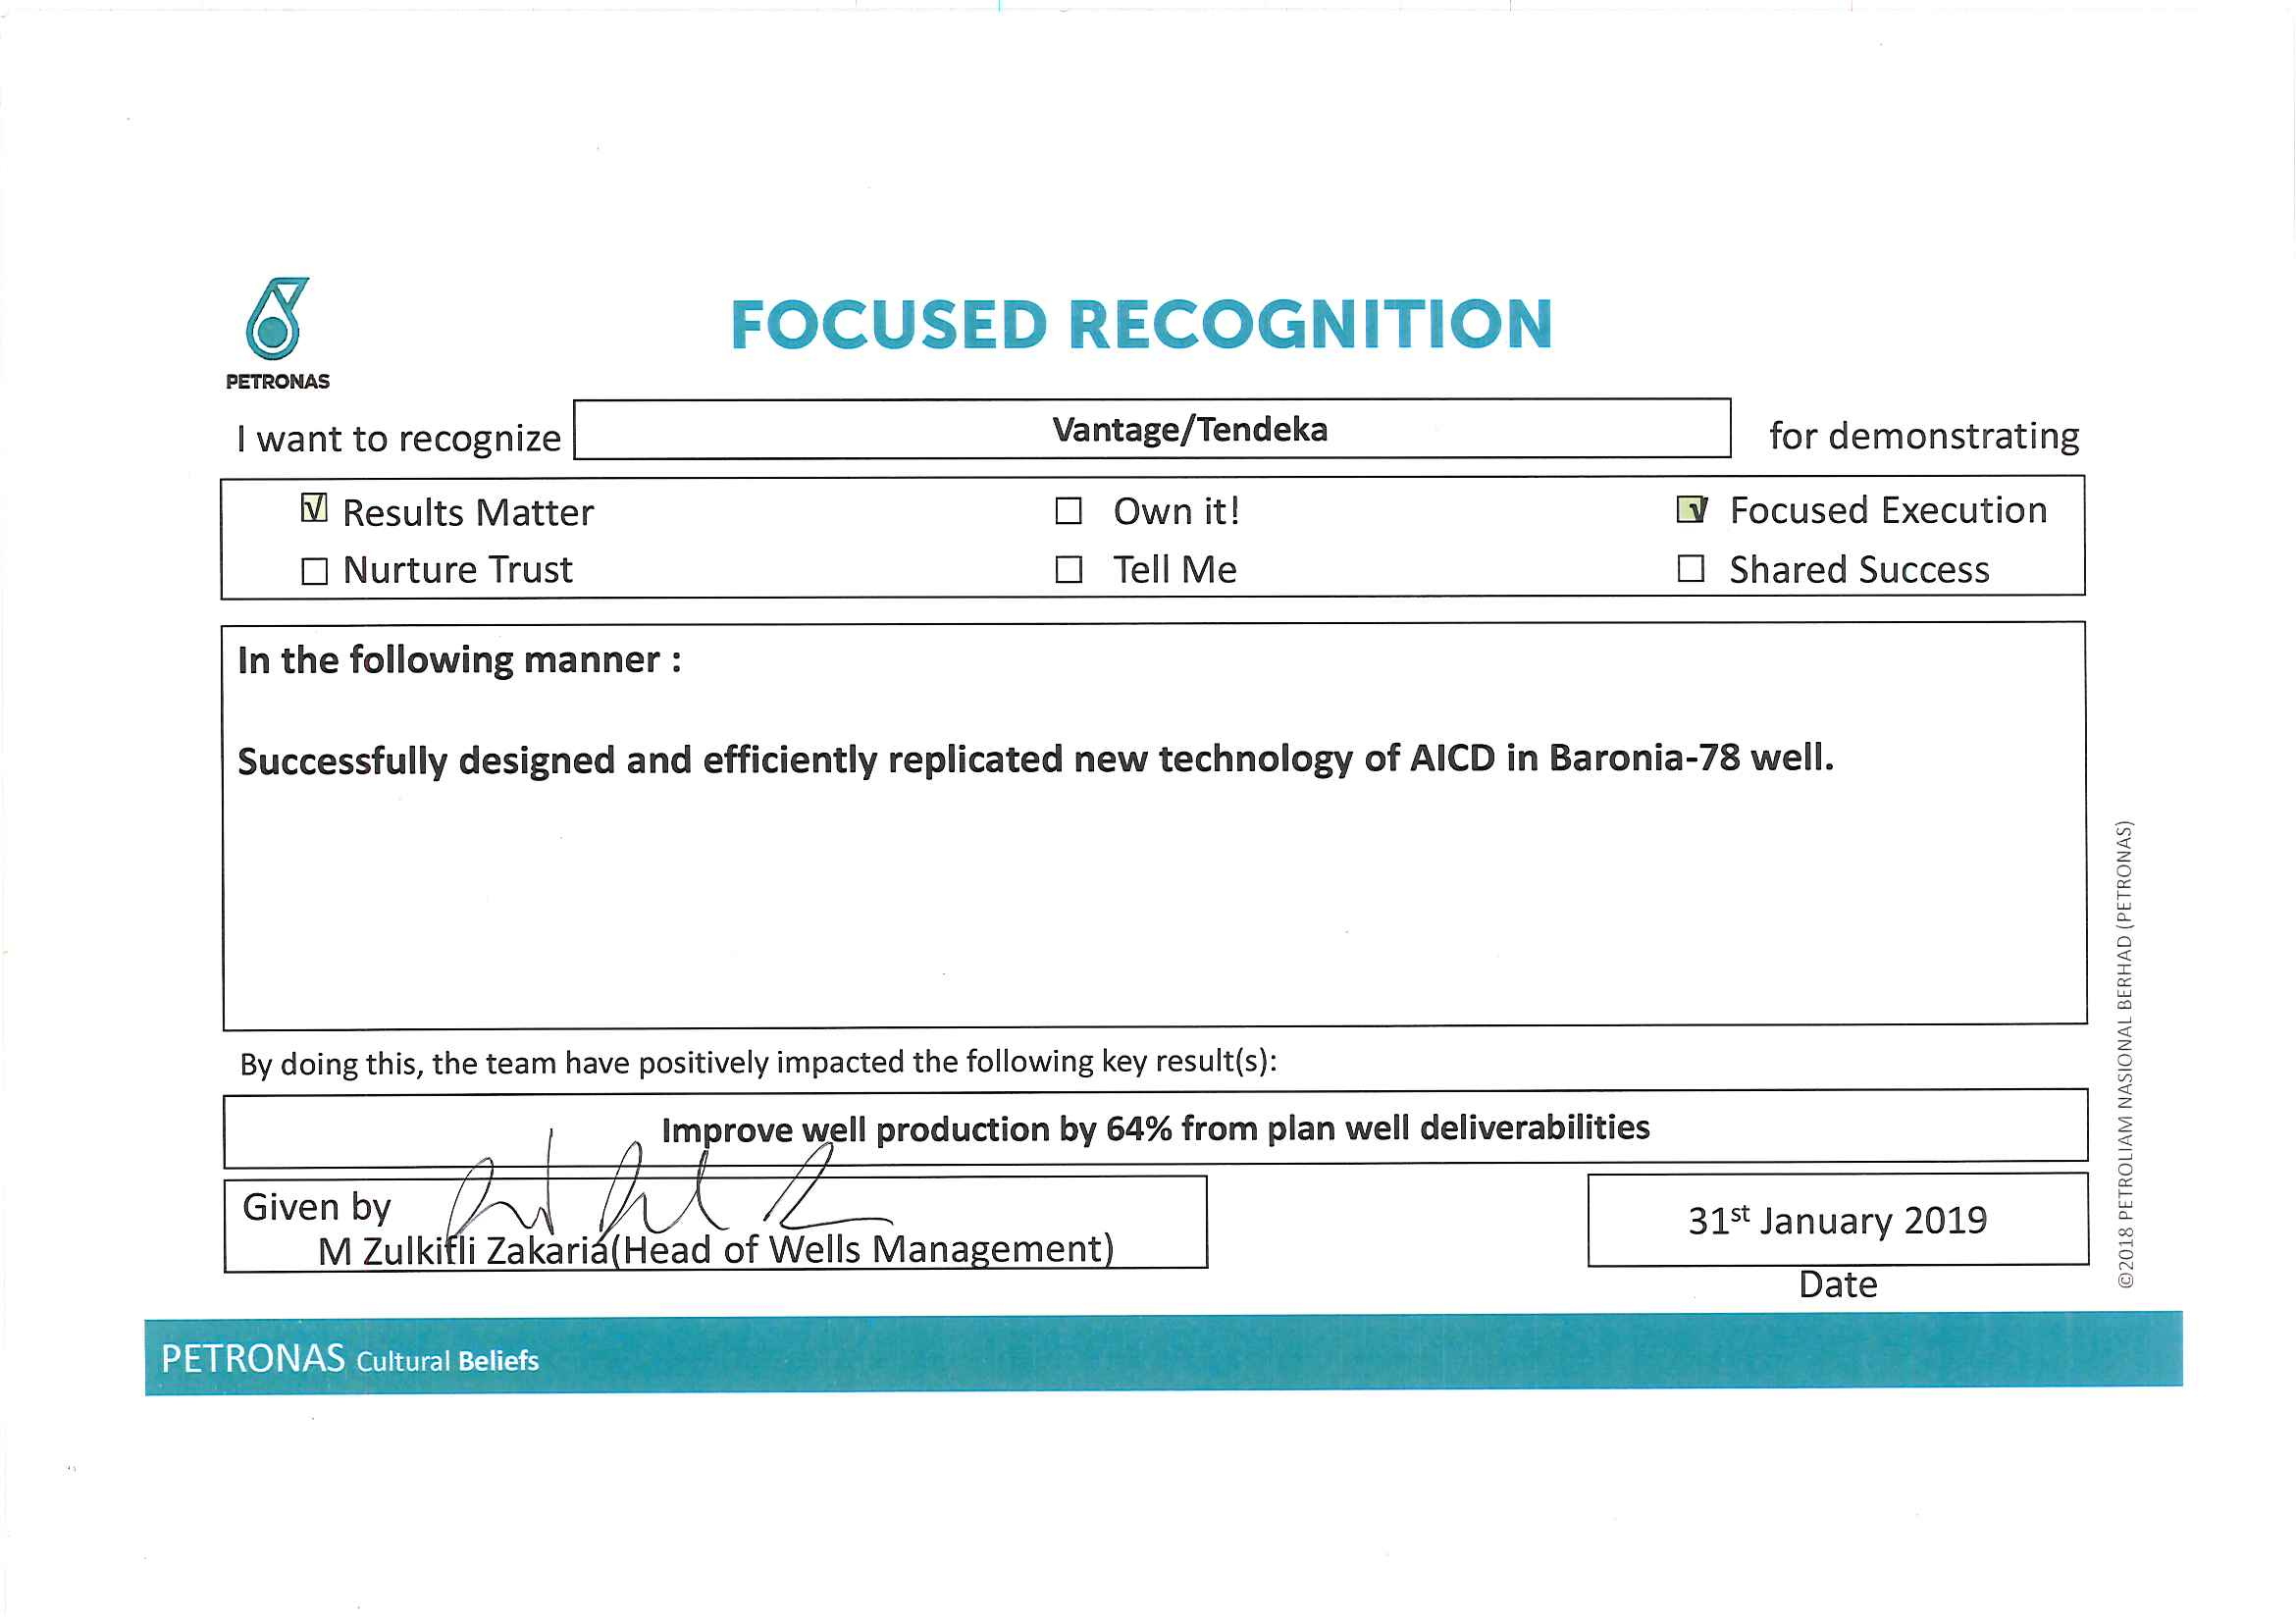 Baronia AICD Recognition for Tendeka